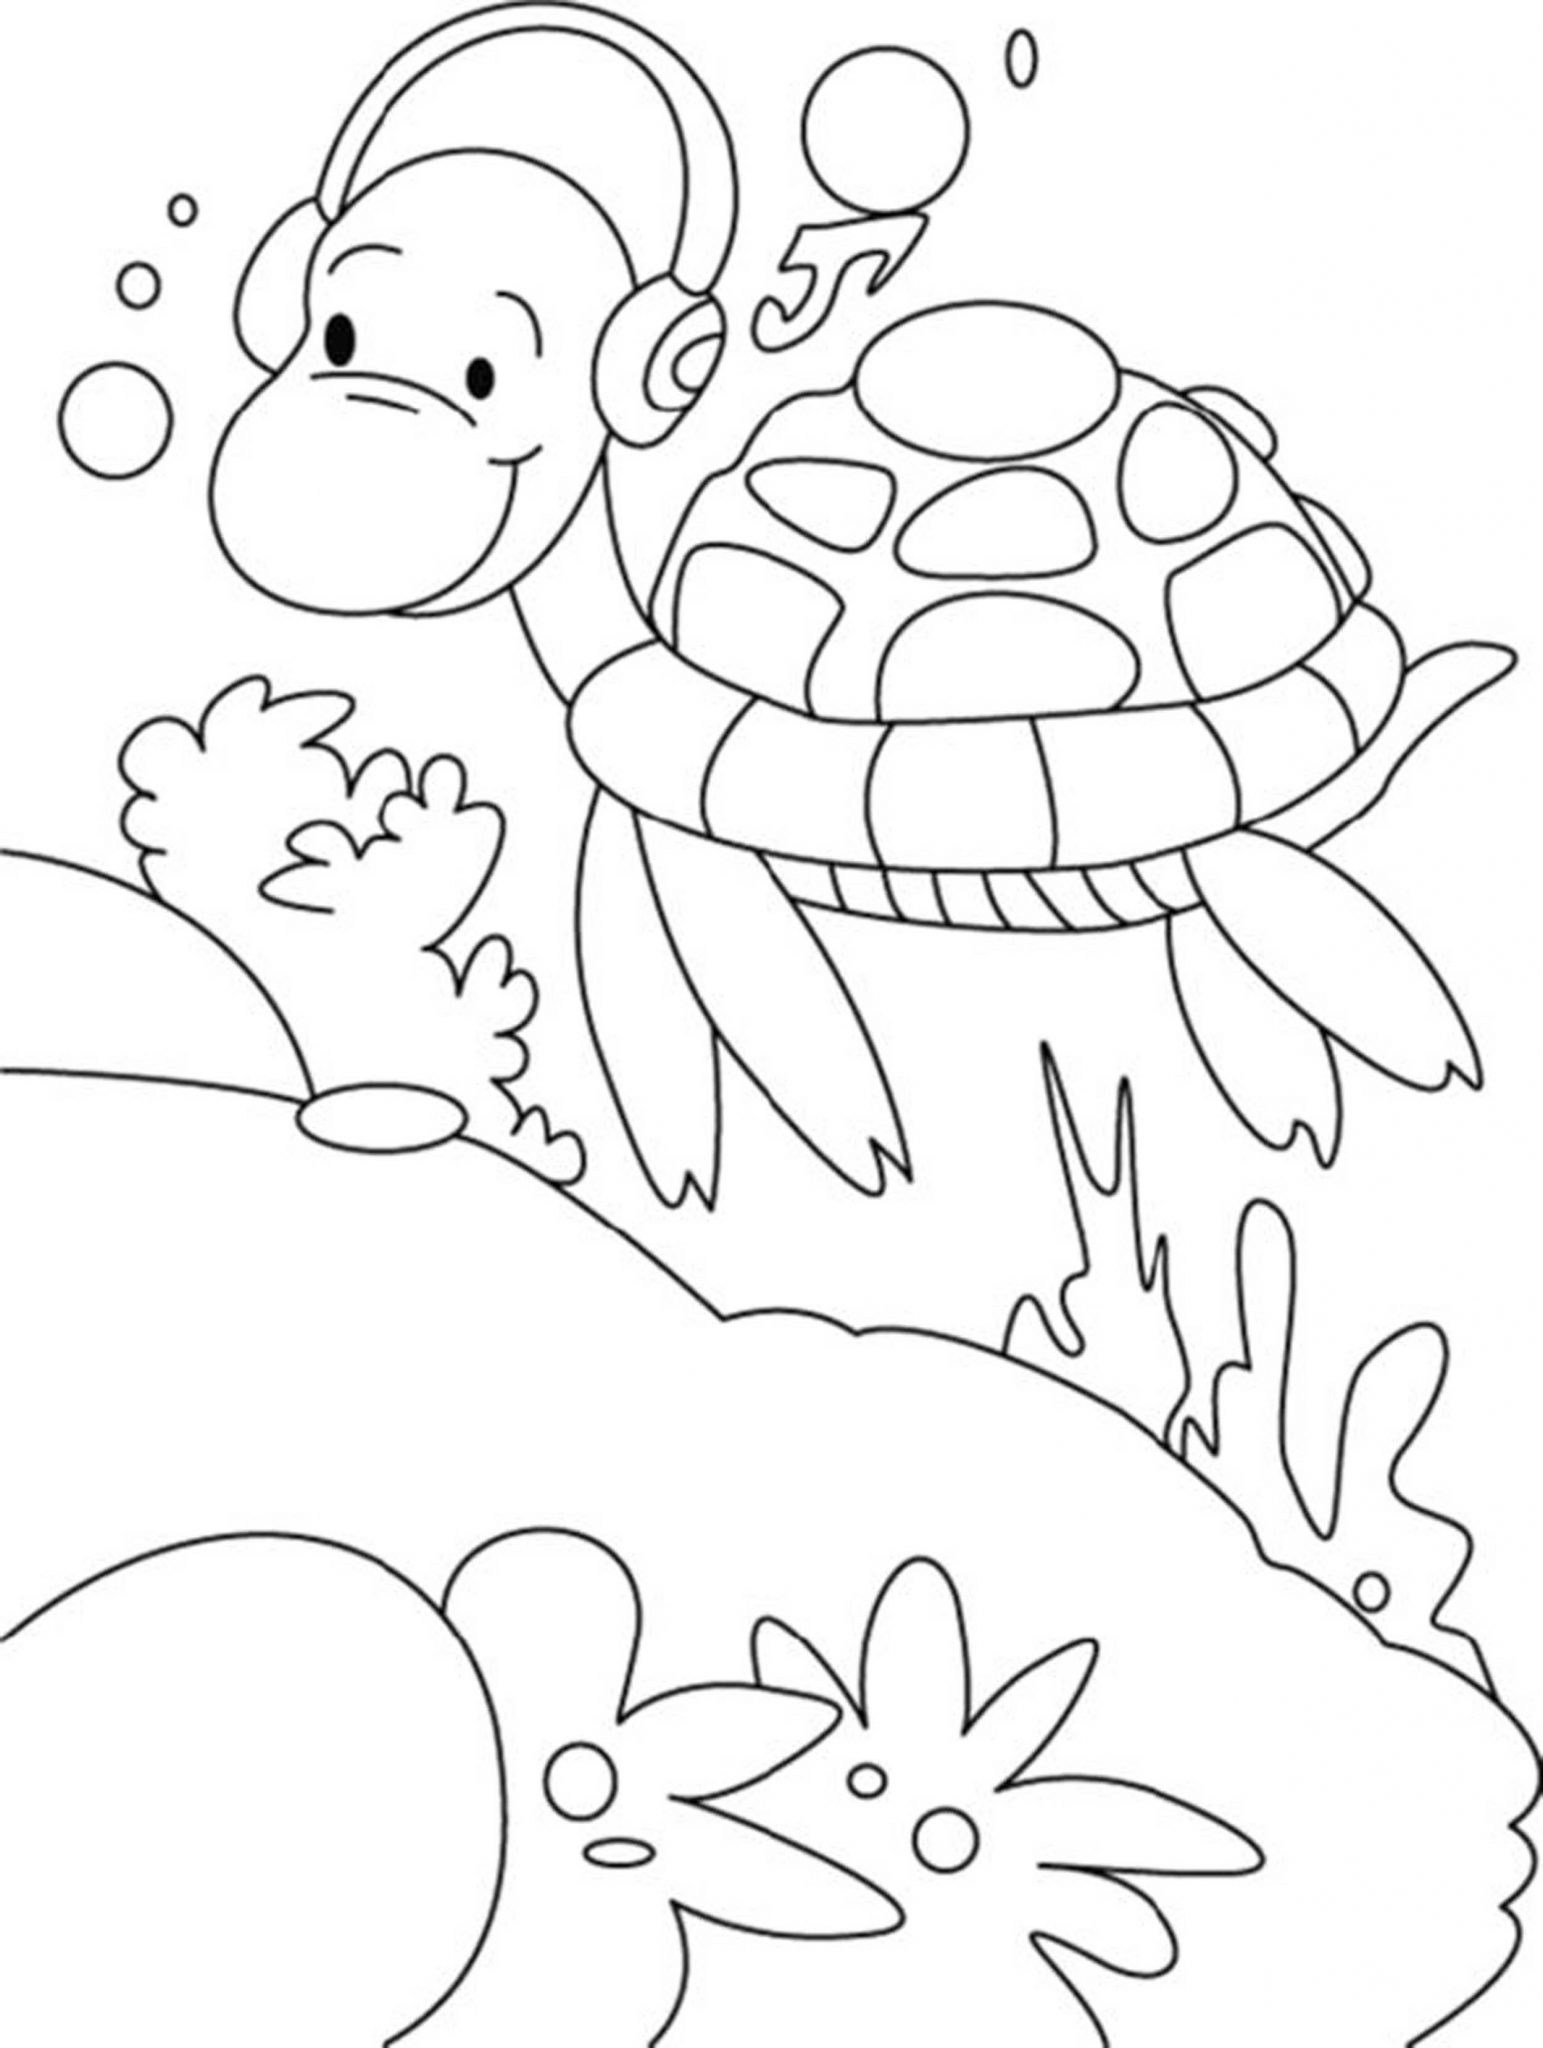 turtle coloring book page coloring pages turtles free printable coloring pages page book coloring turtle